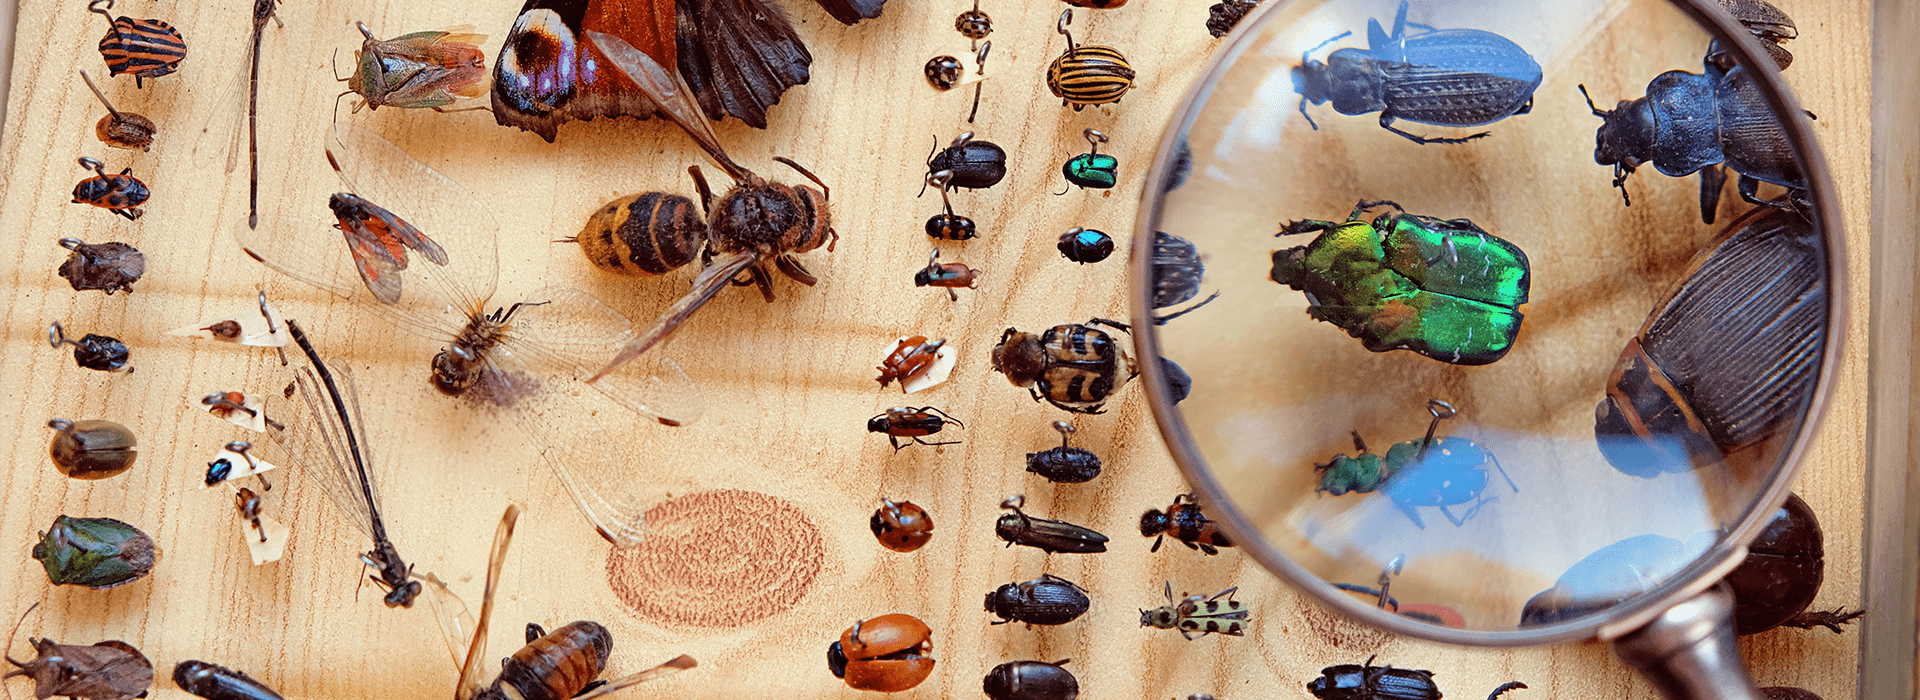 an entomology display case in wichita kansas